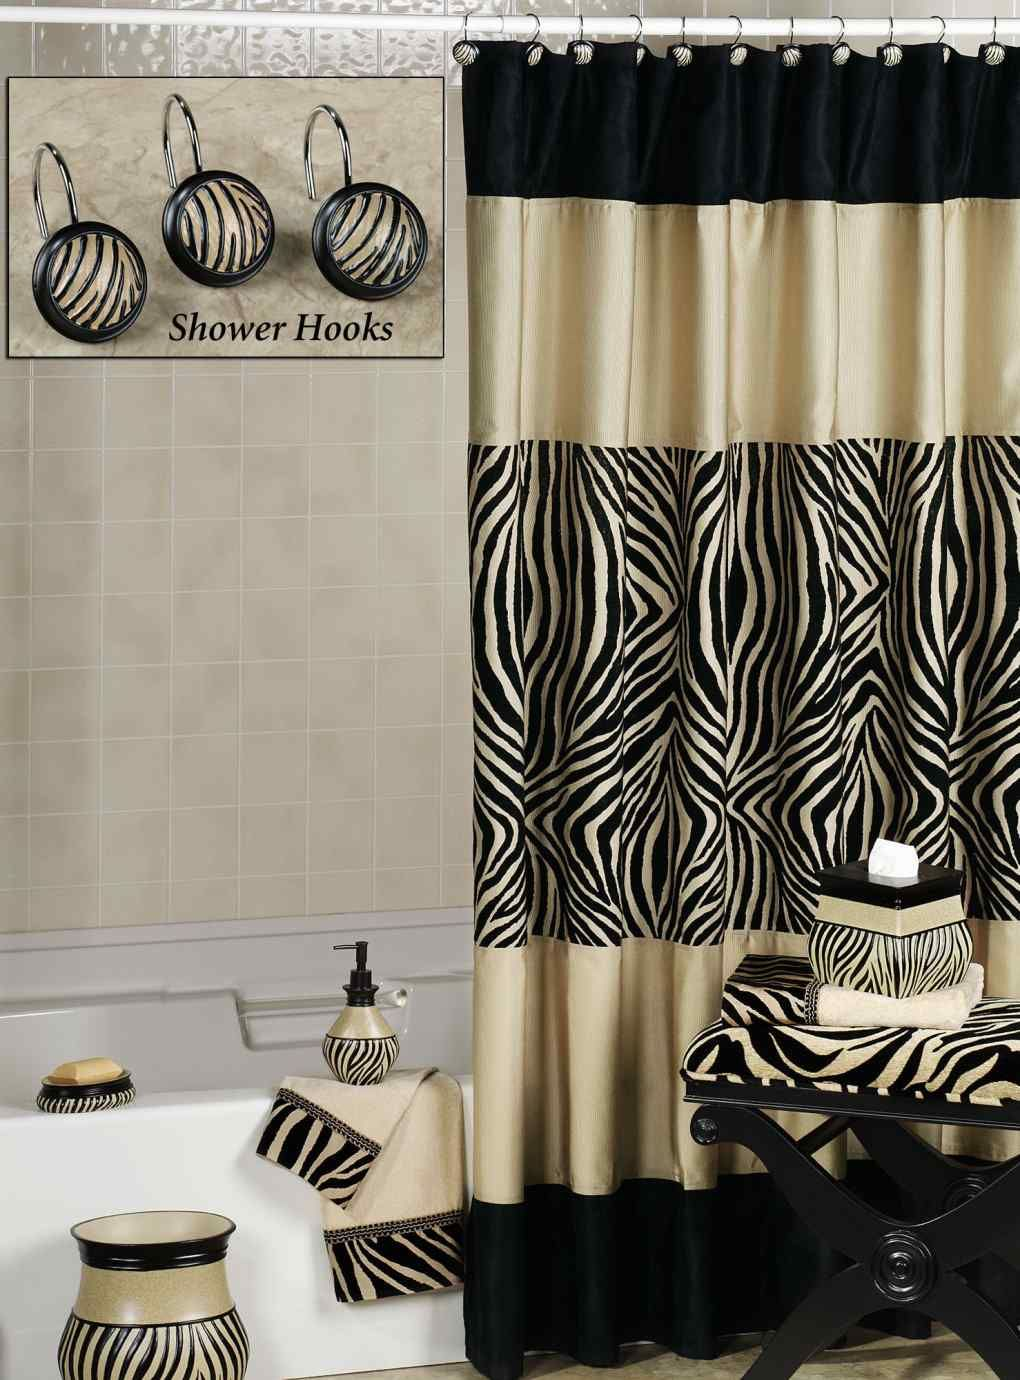 Walmart Bathroom Shower Curtains: Animal Print = True Love